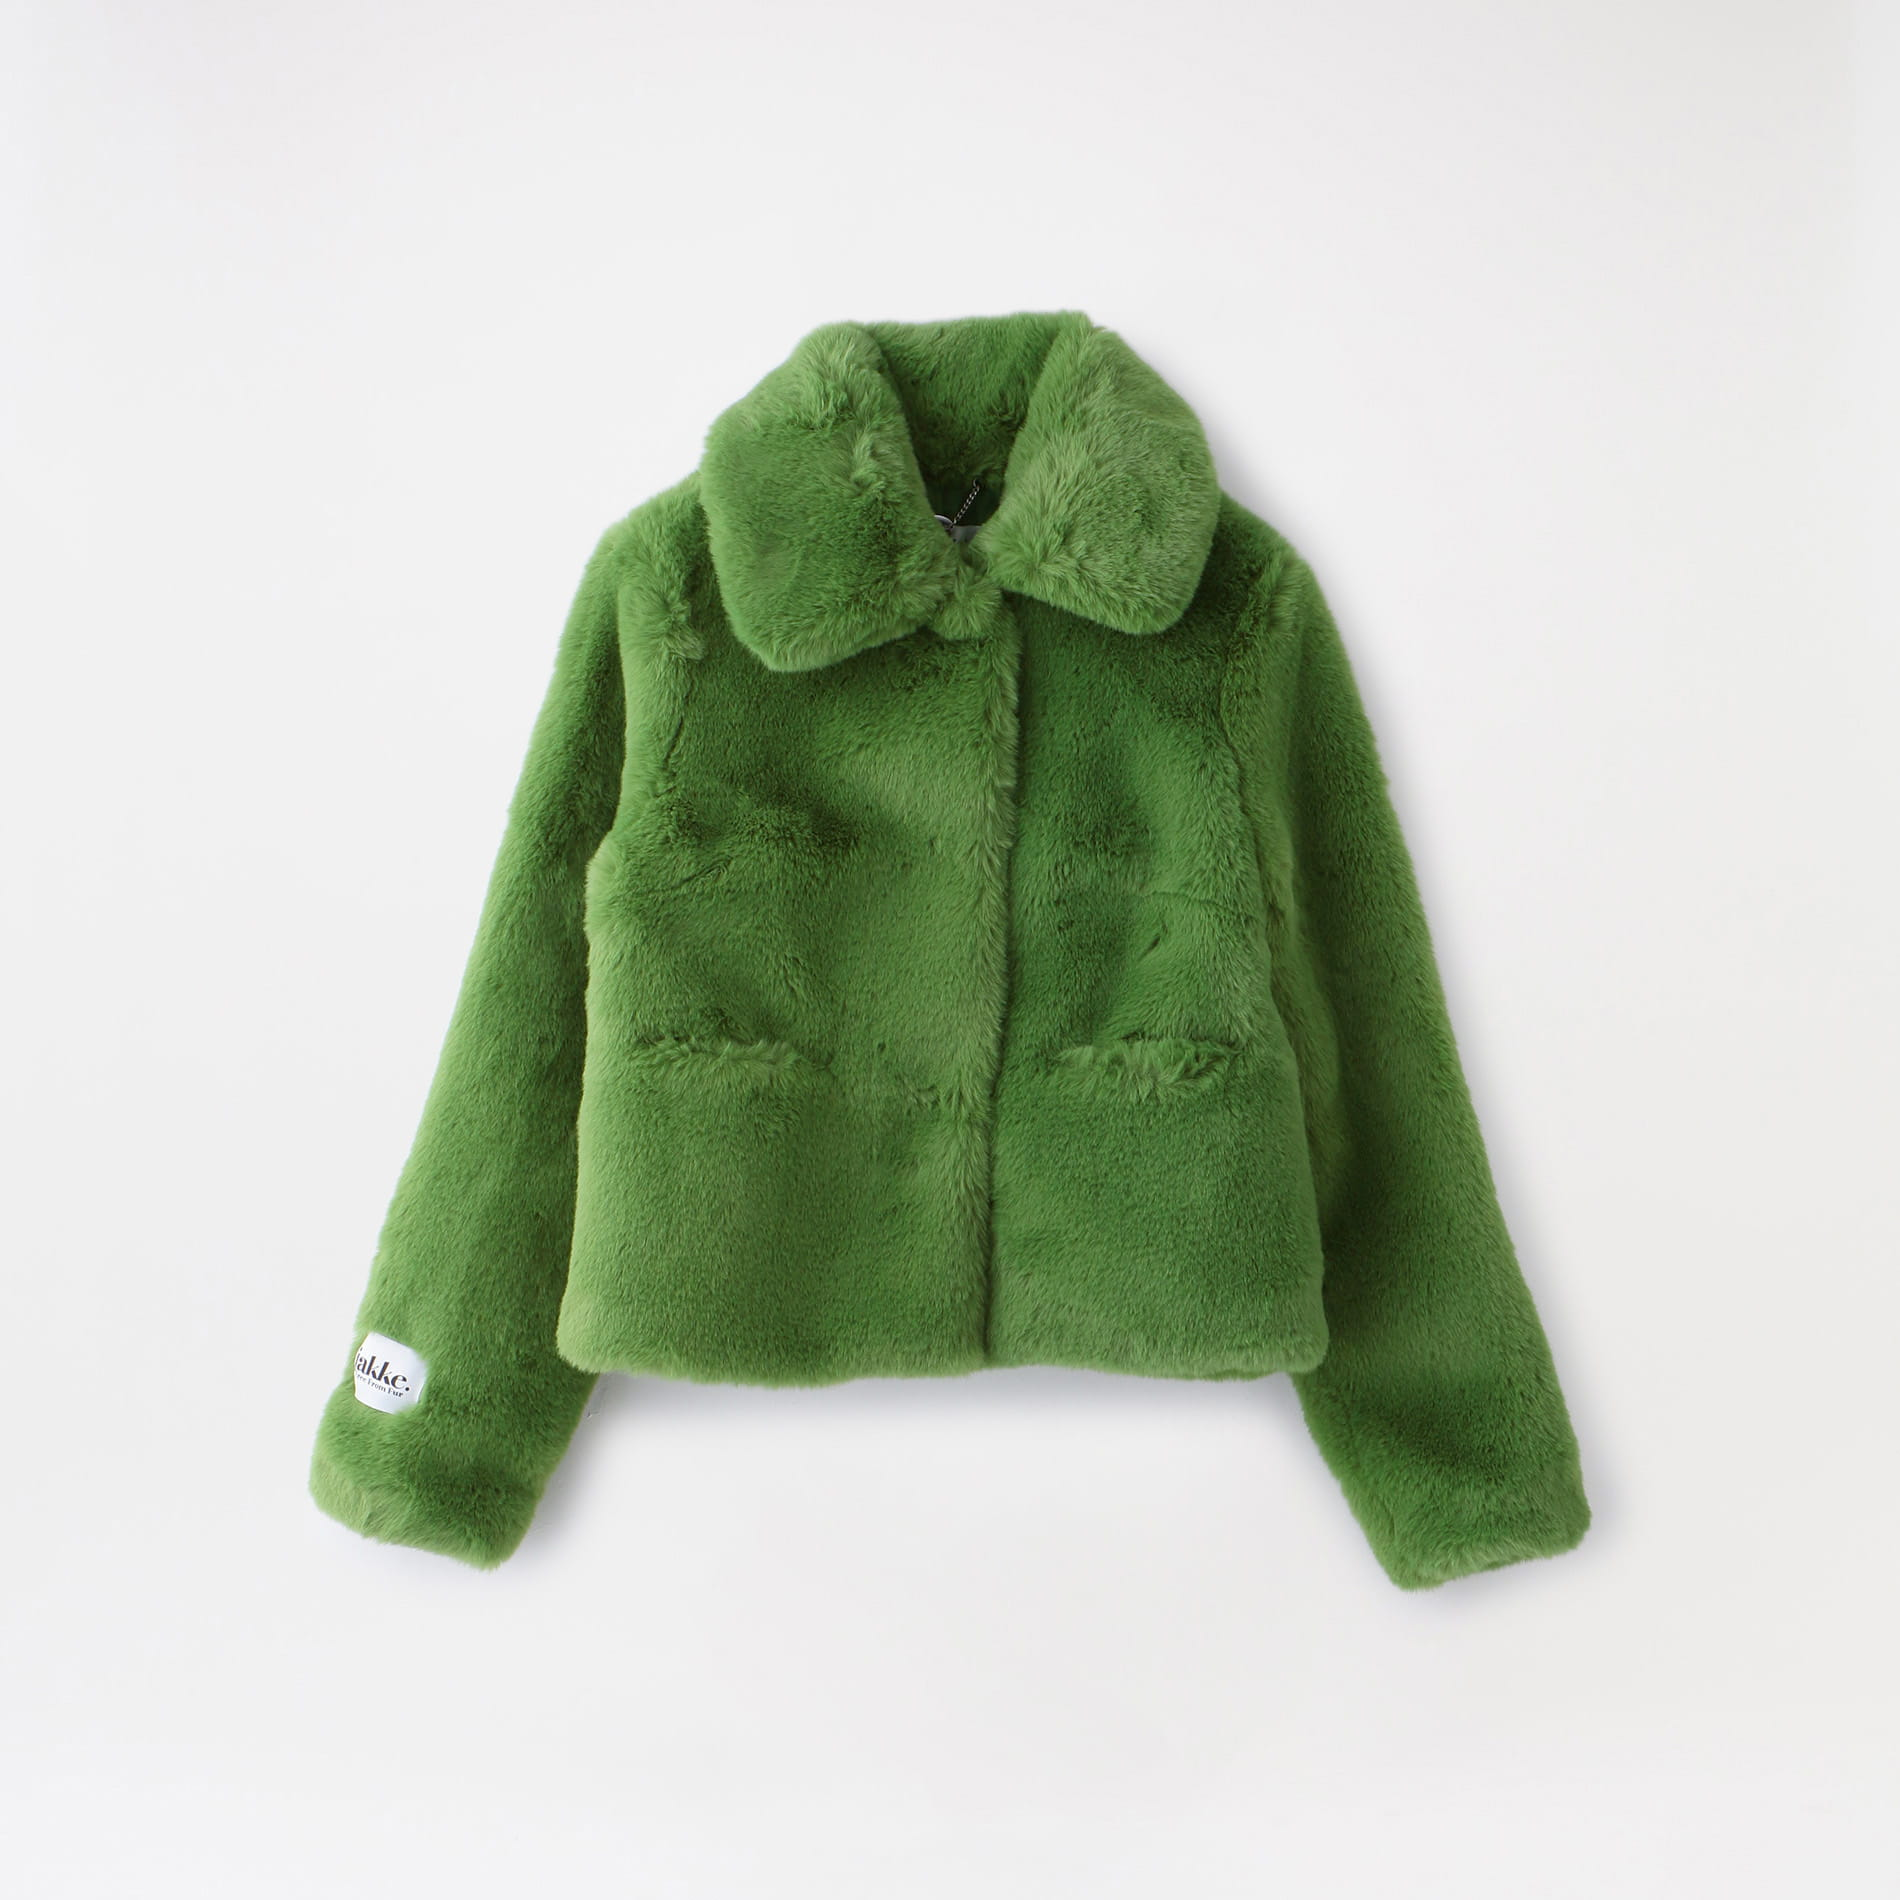 【jakke.】WOMEN FAUX FUR CROPPED JACKET TOMMY